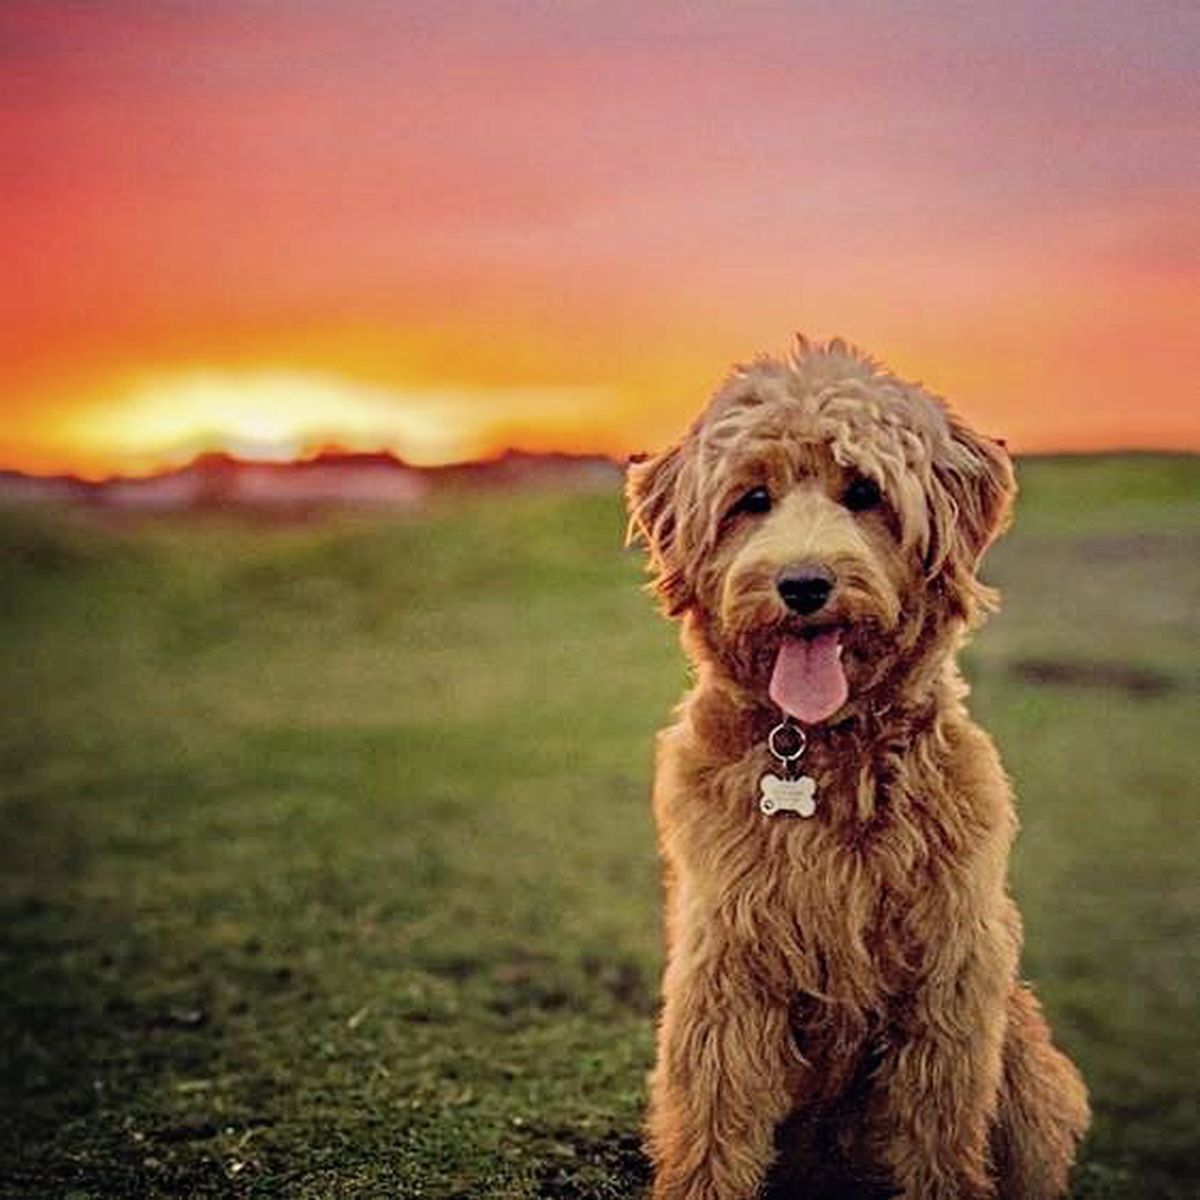 Flo the Goldendoodle owned by Richard Cranch won a 'hotly contested' competition to be the new canine face of GY1 for 2021. Image by Richard Cranch. (29102783)